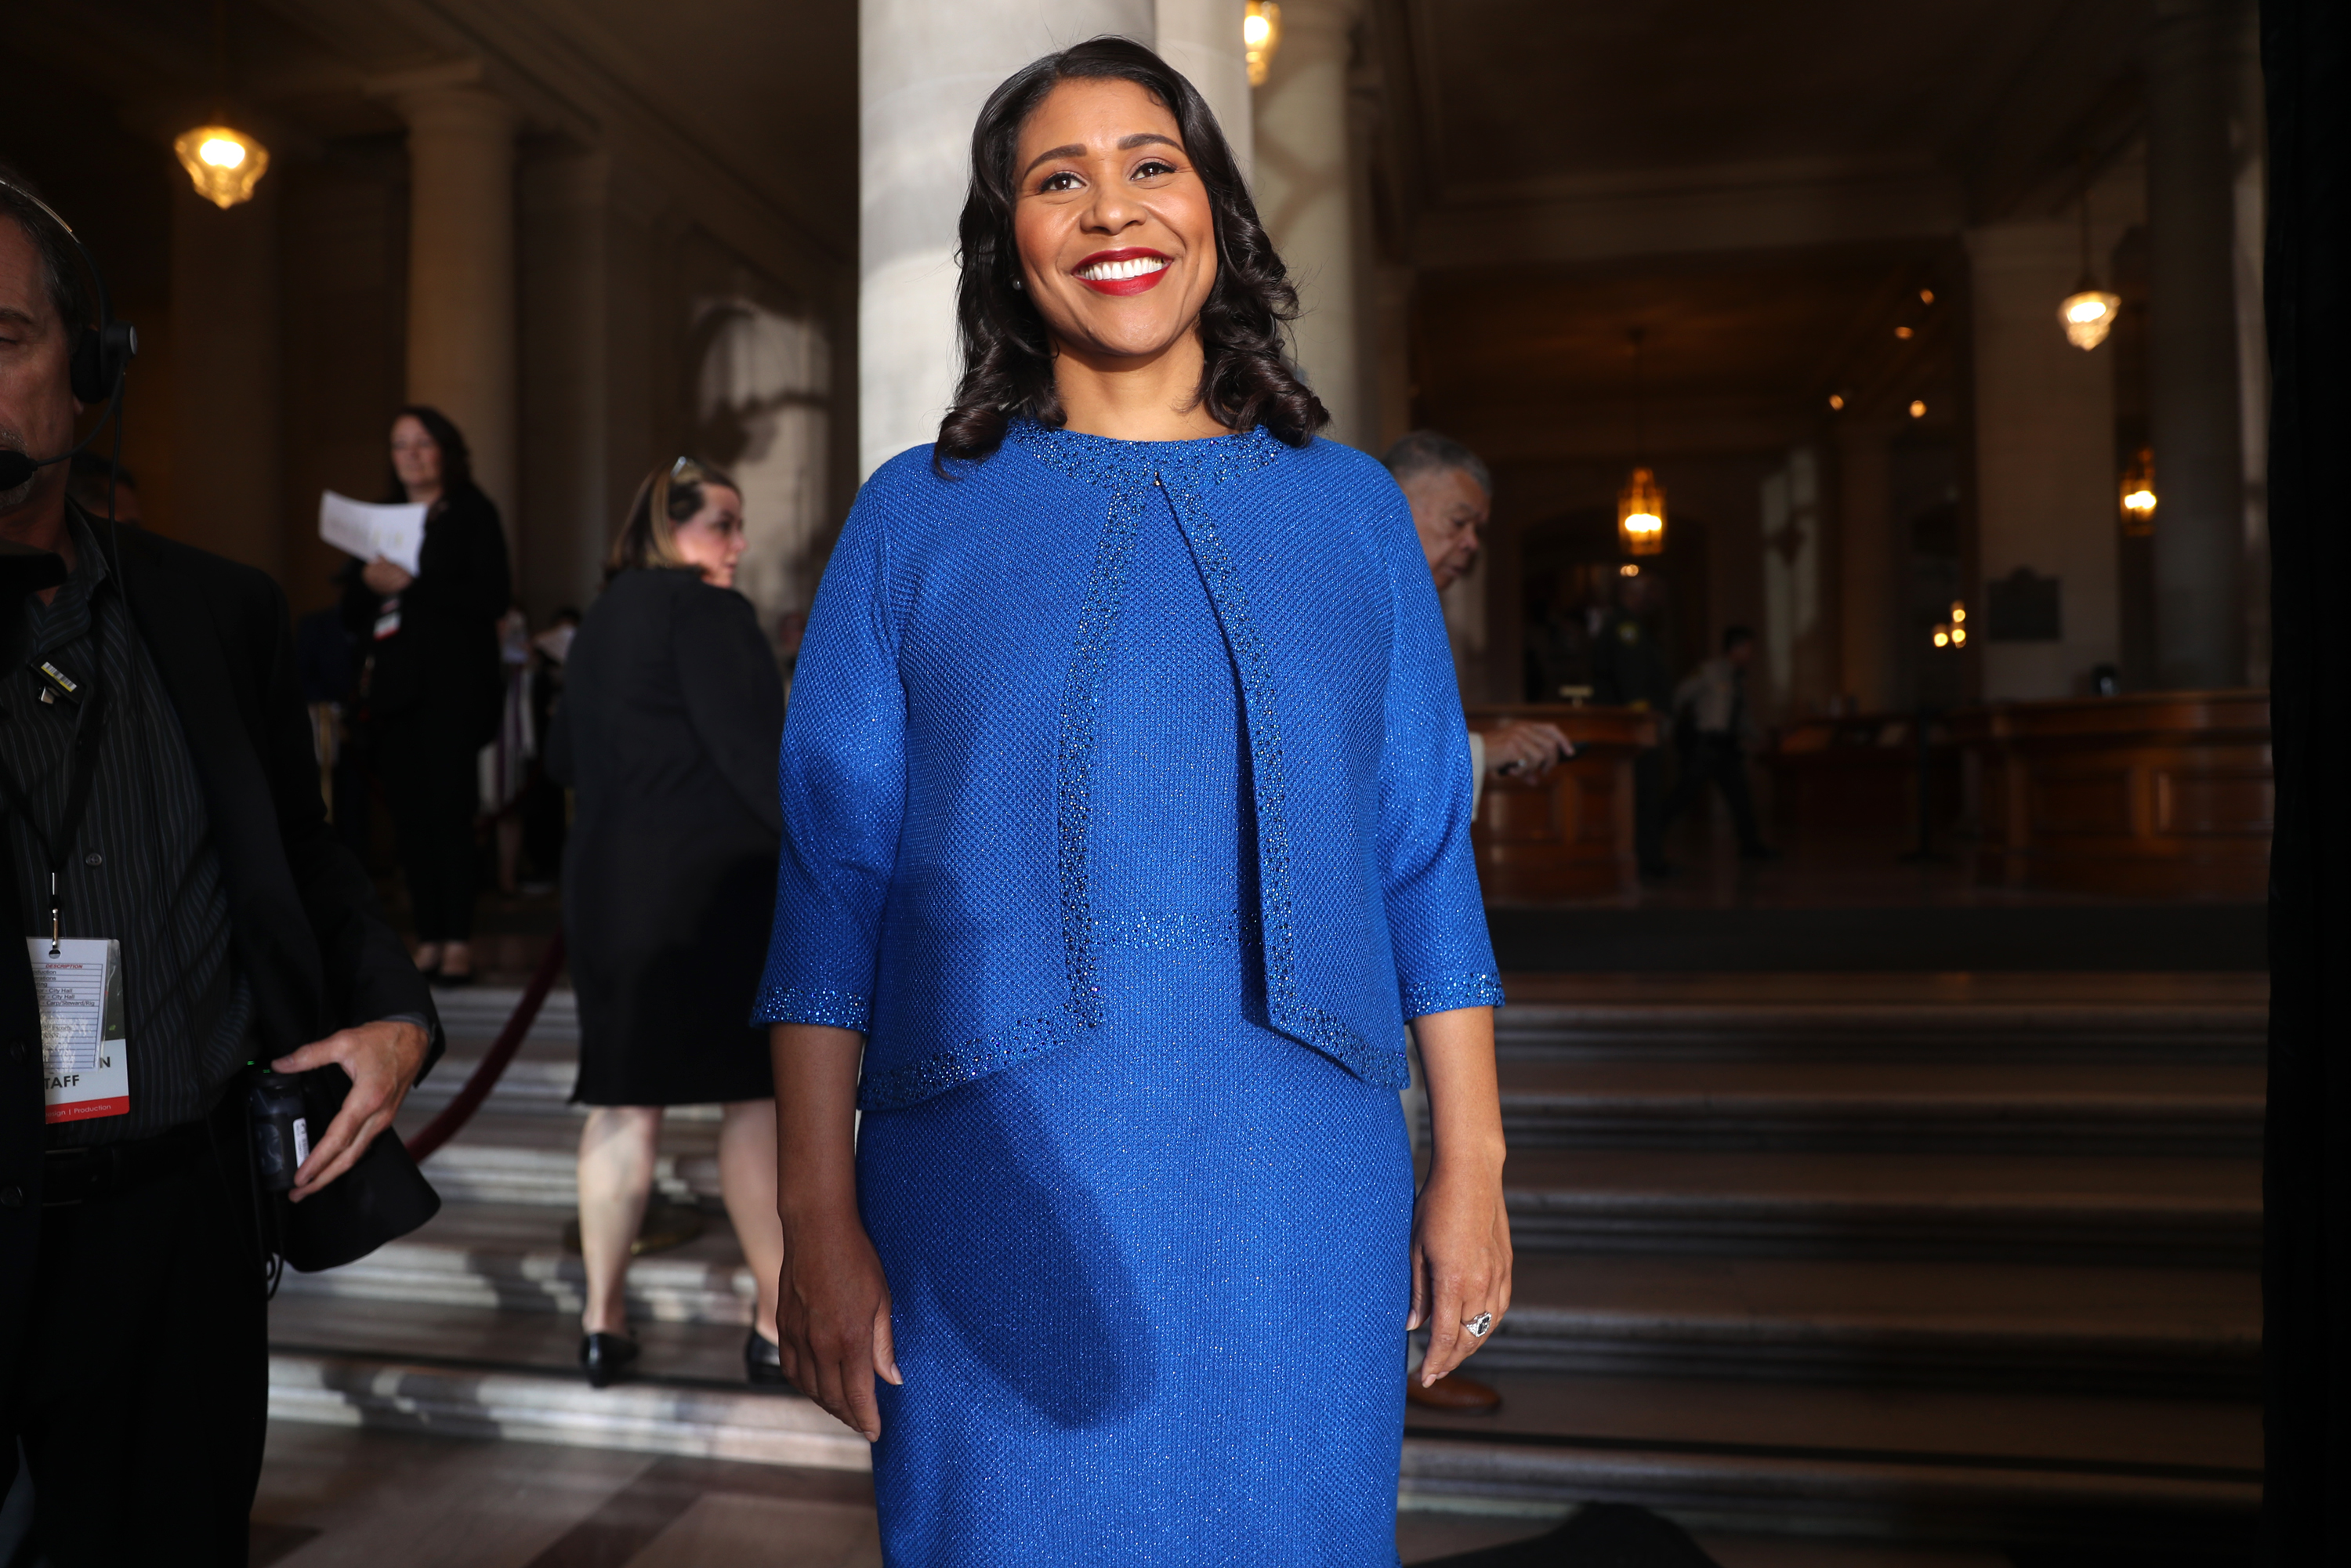 <div class='meta'><div class='origin-logo' data-origin='none'></div><span class='caption-text' data-credit='The Chronicle'>San Francisco Mayor London Breed waits to walk out of City Hall for her inauguration in San Francisco, Calif. on Wednesday, July 11, 2018.</span></div>